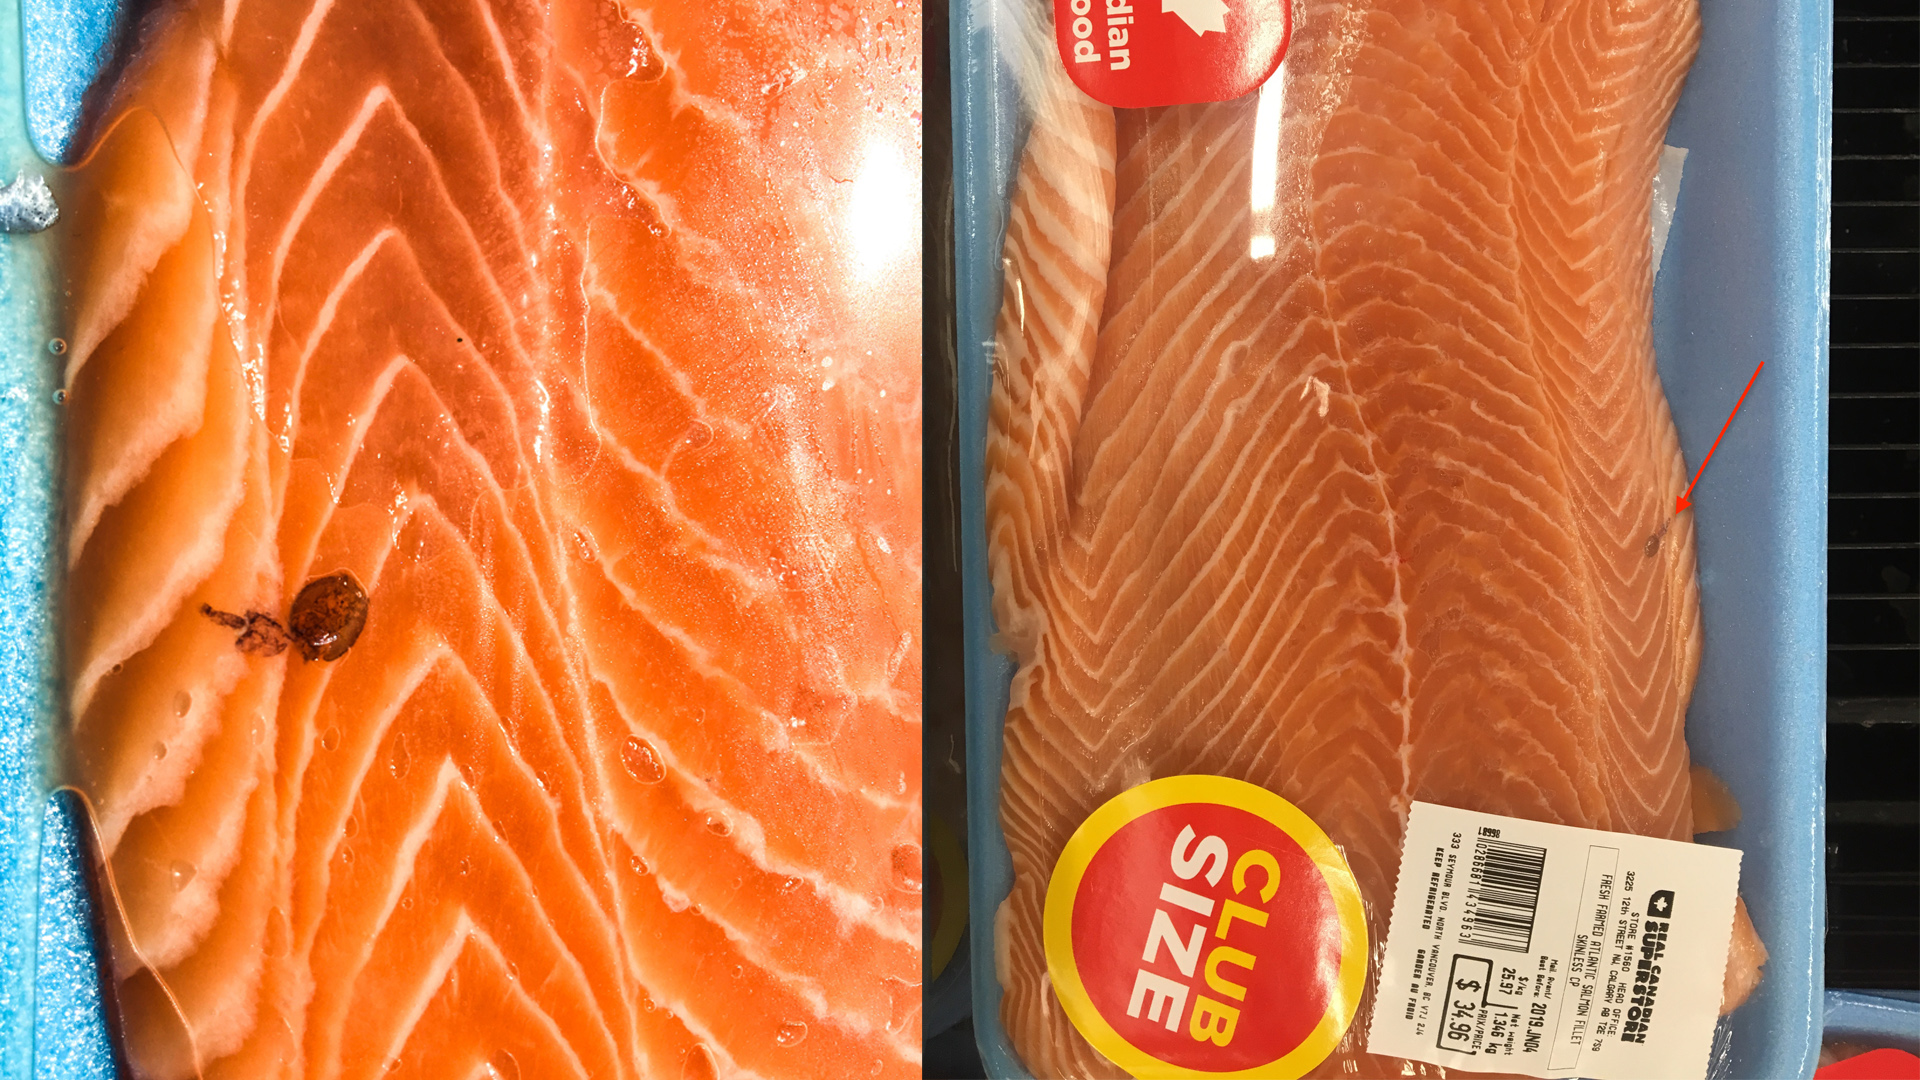 Sea louse found in packaged salmon from North Vancouver store   CTV News